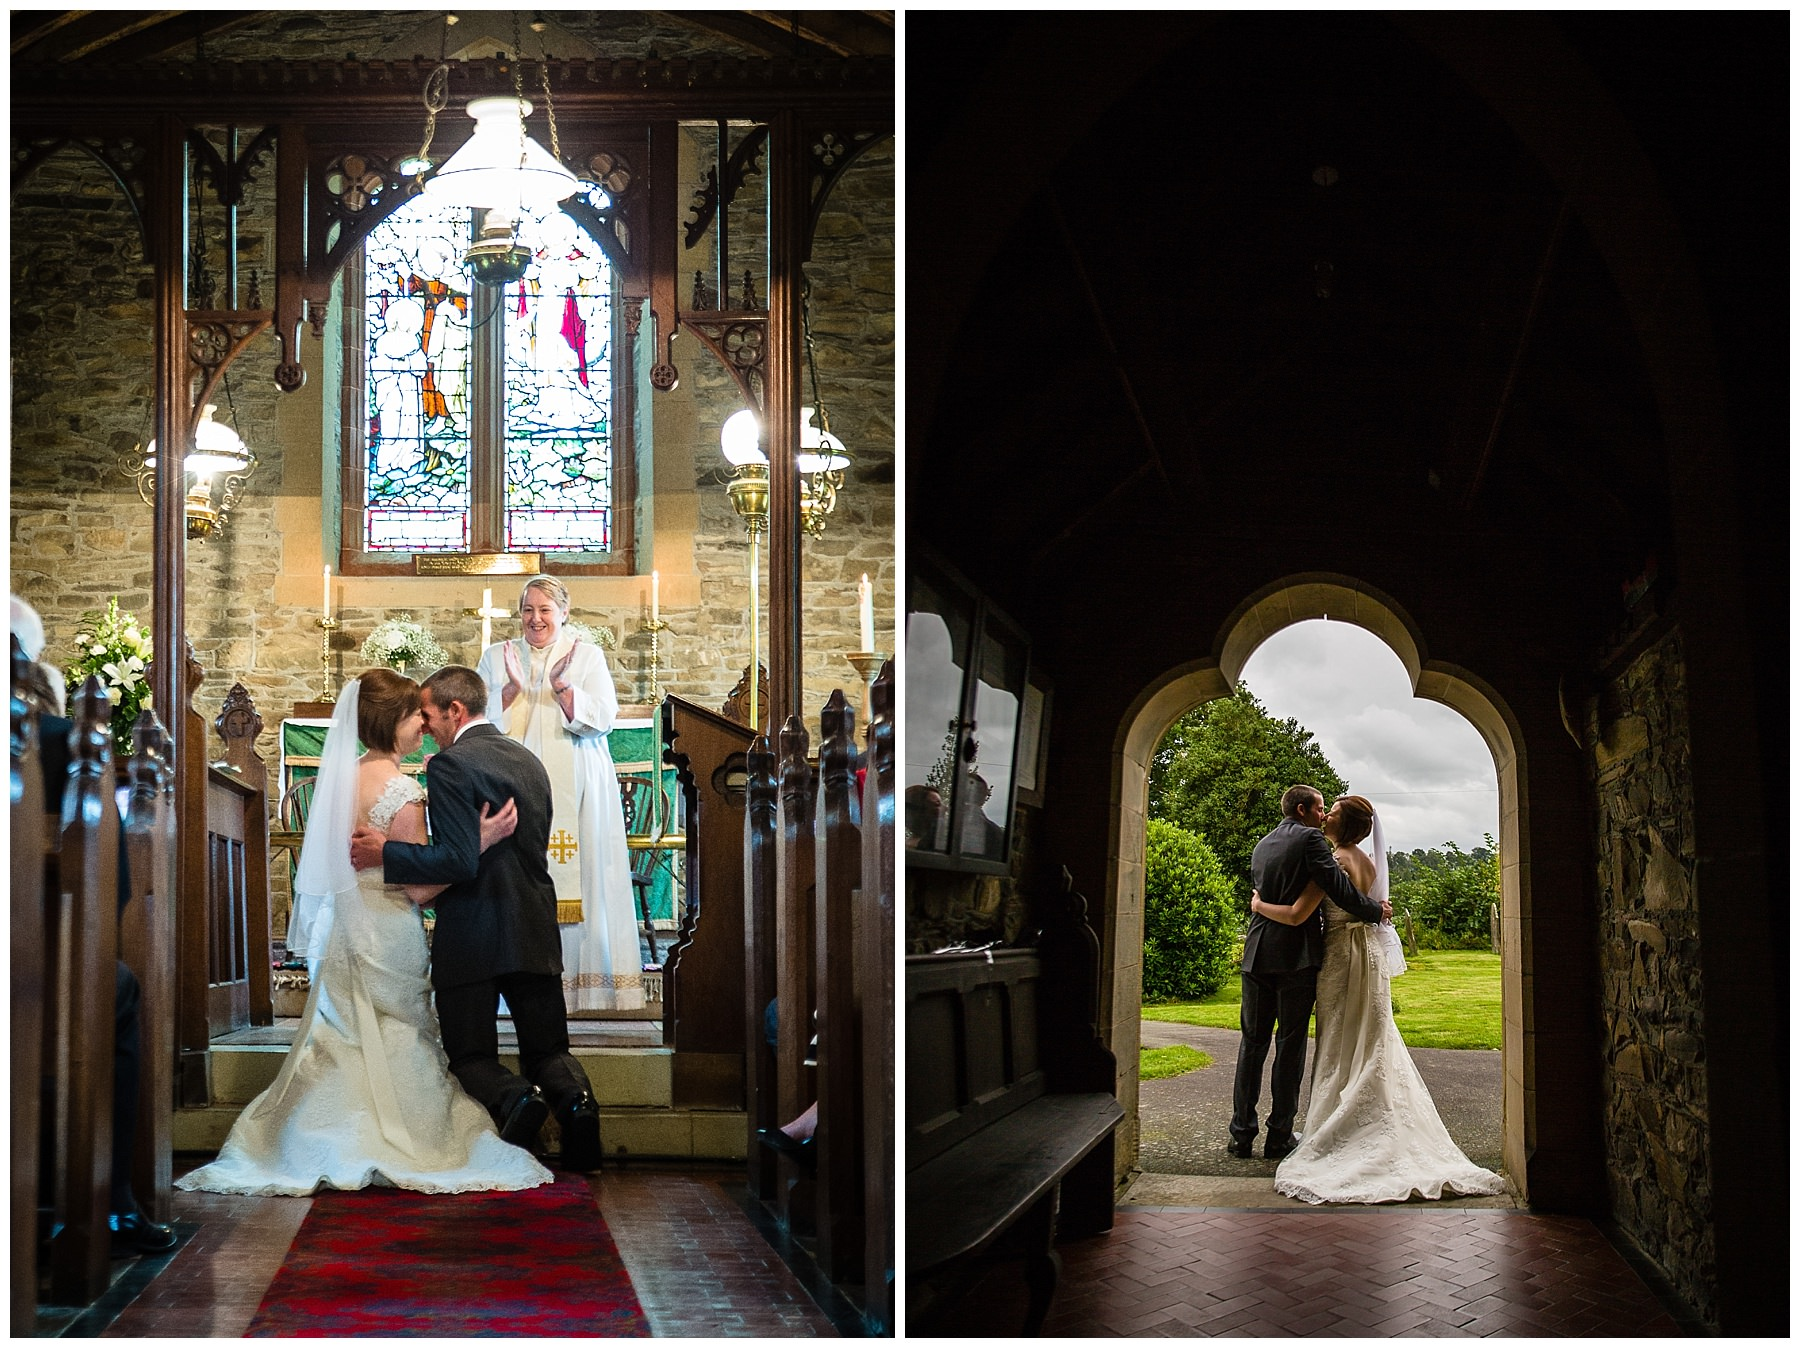 End of ceremony at St.Llwchaiarn's Church, Llanmerewig - Charlotte Giddings Photography